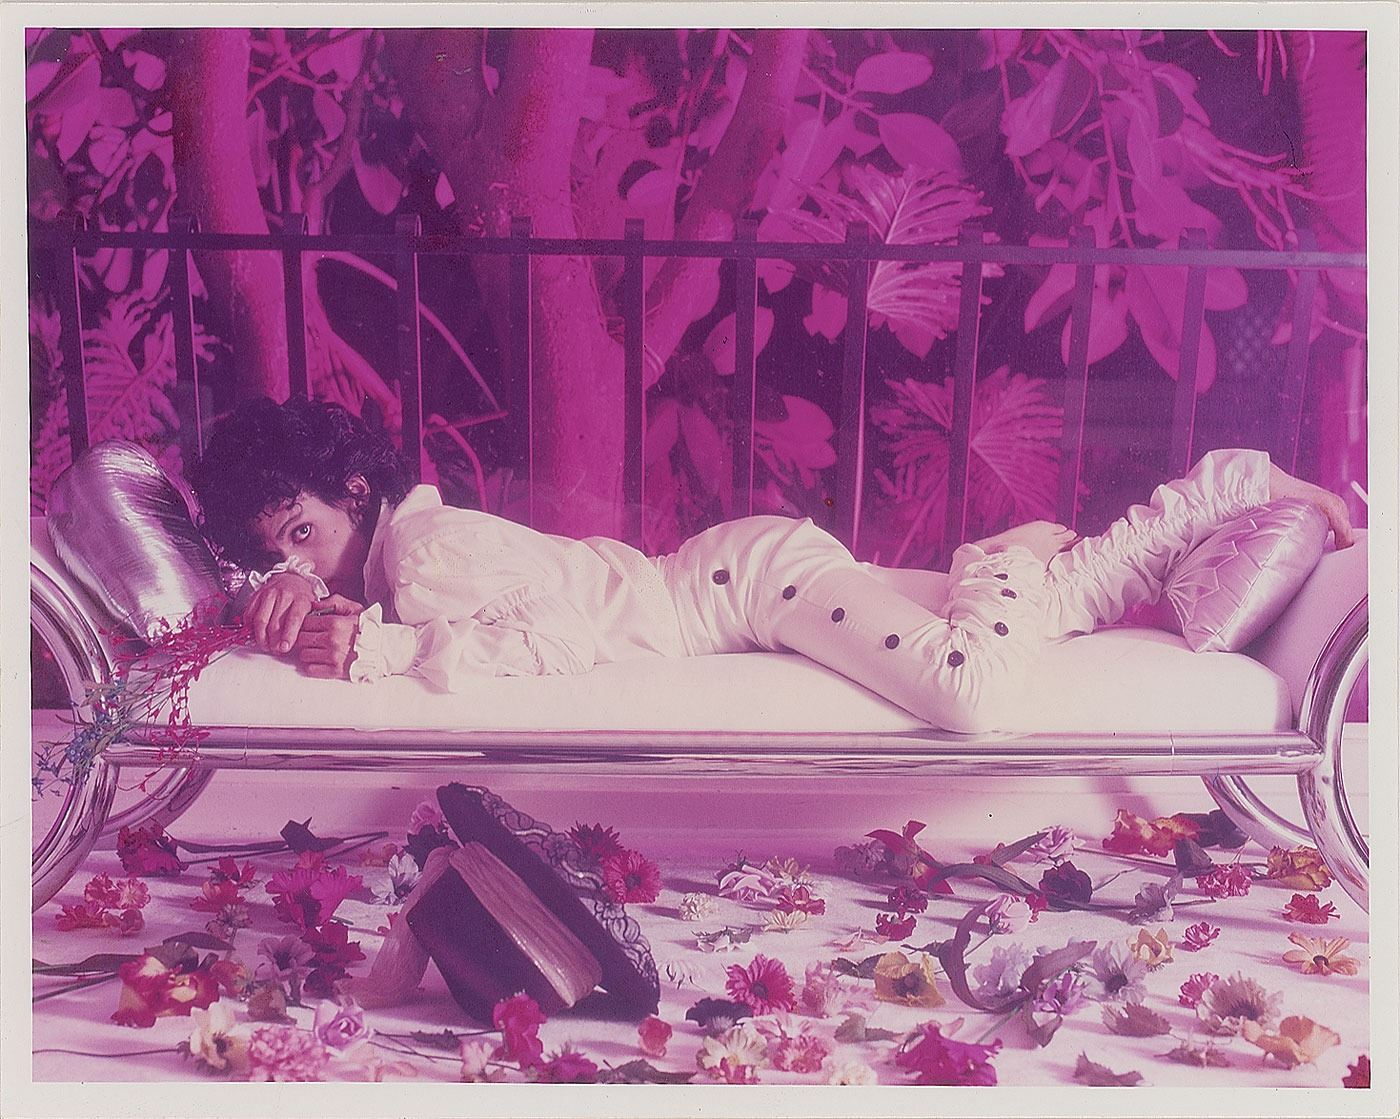 12x12 Limited Edition Print Hand-Signed /& Number by Artist Purple Rain of Prince William III